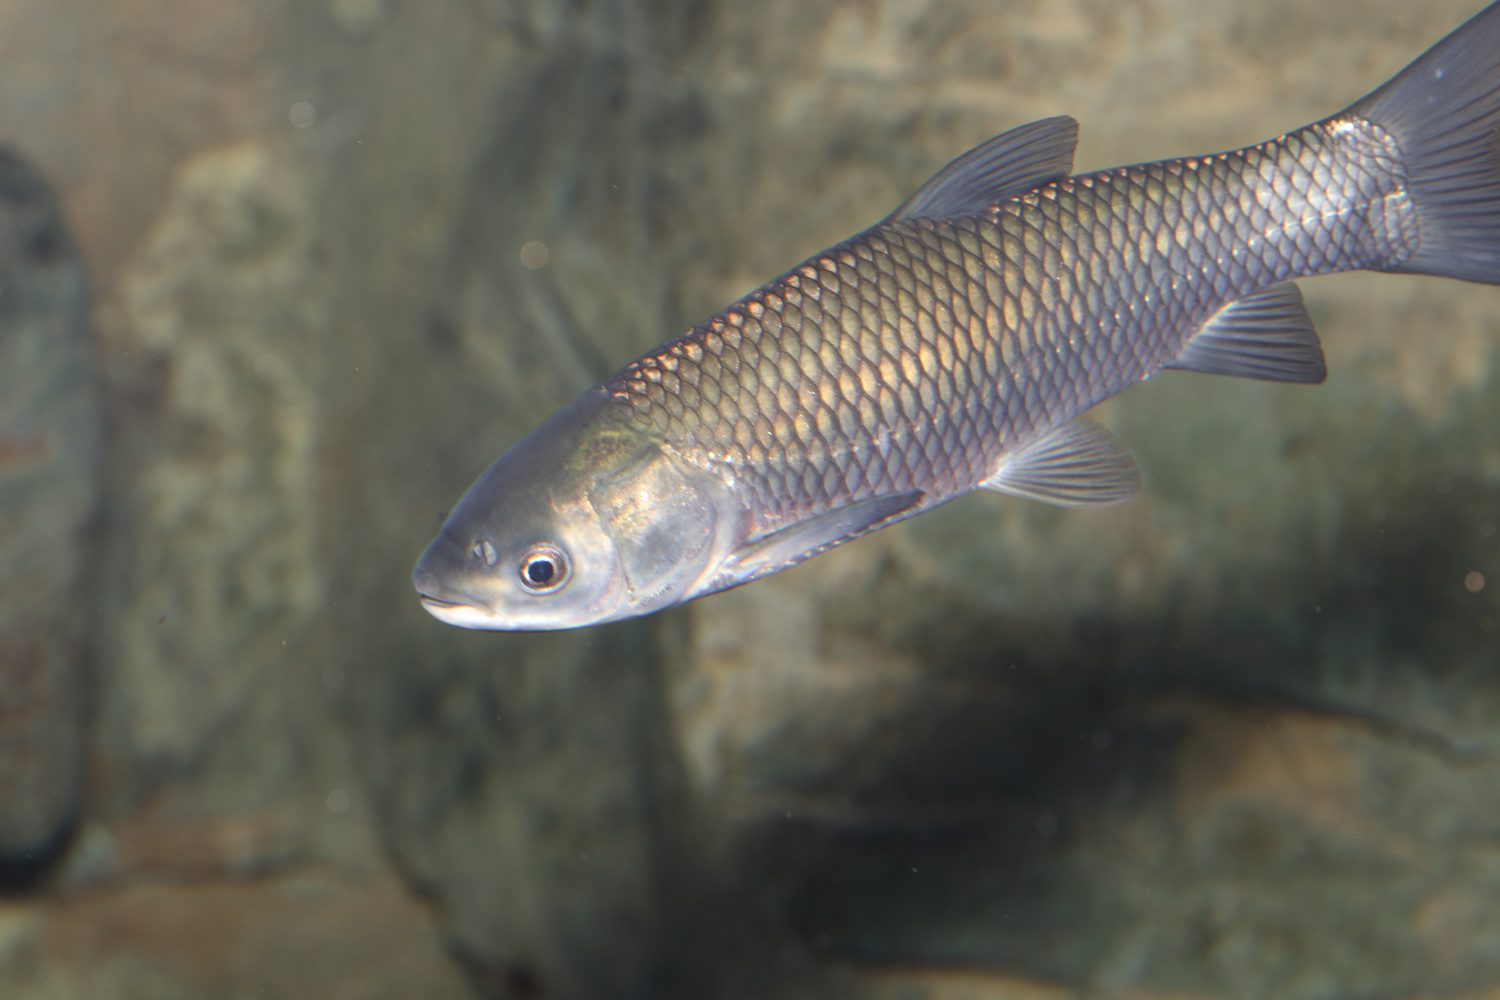 Juvenile Grass Carp at the Toronto Zoo exhibit